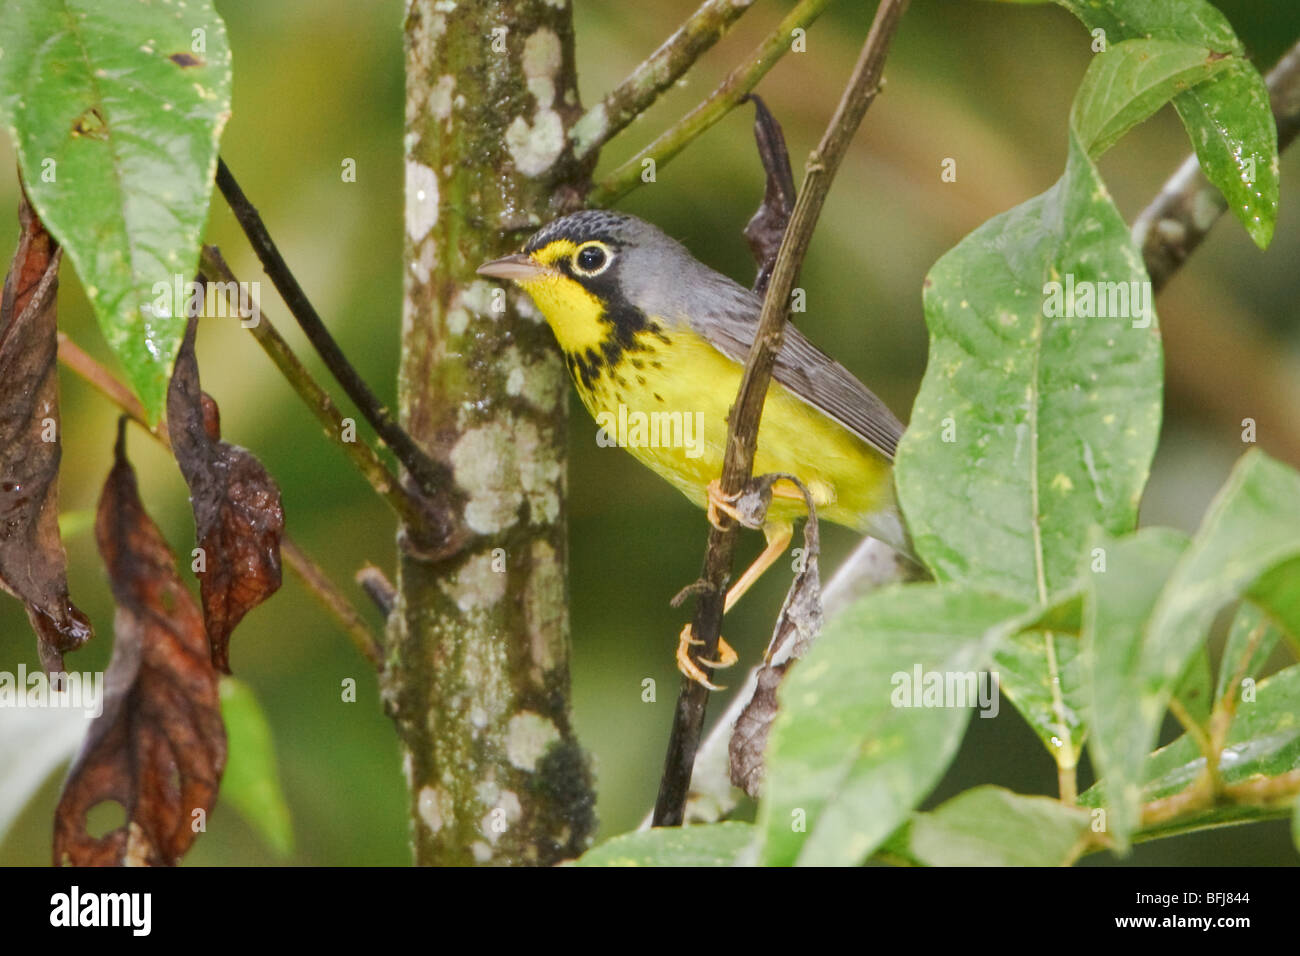 A migratory Canada Warbler (Wilsonia canadensis) perched on a branch near Podocarpus National Park in southeast - Stock Image